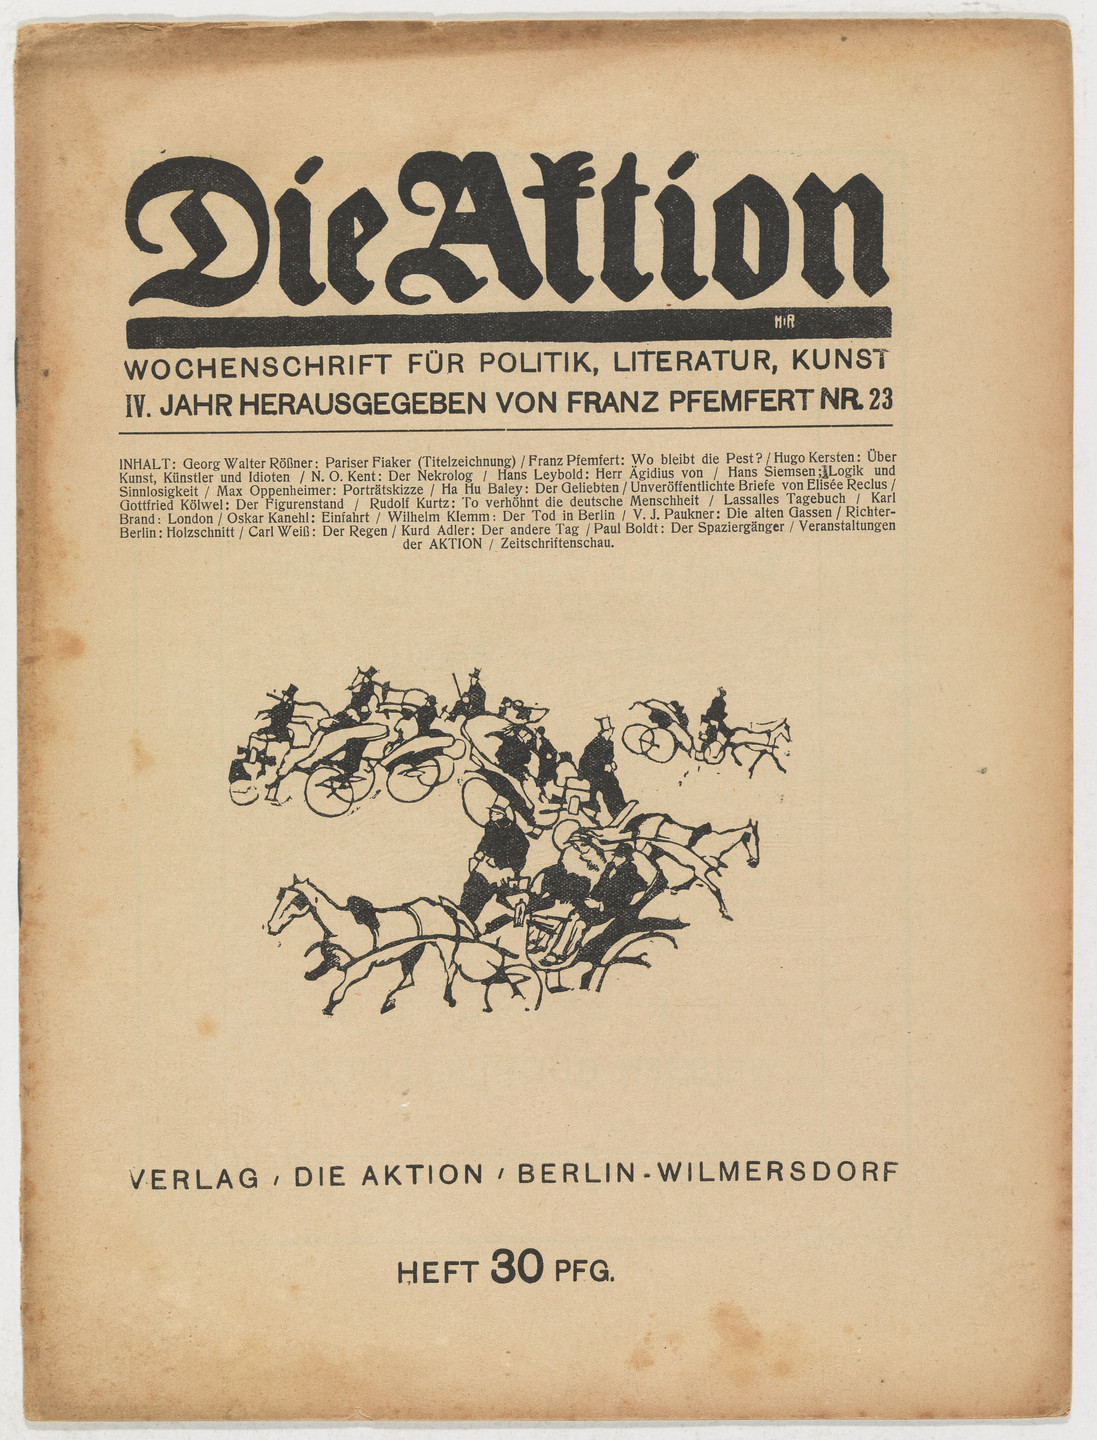 Heinrich Richter-Berlin. Die Aktion, vol. 4, no. 23. June 6, 1914